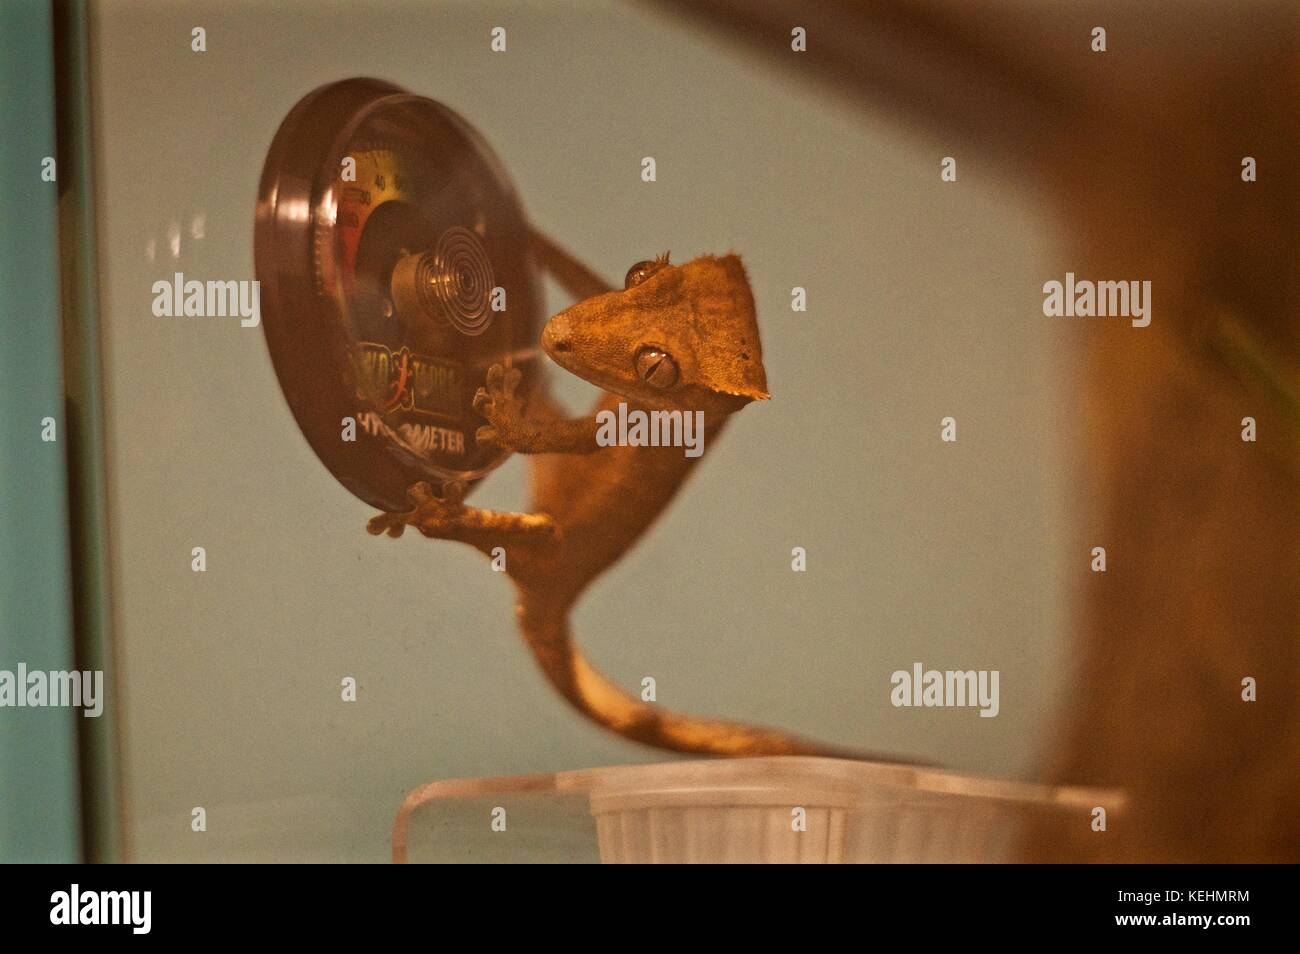 Juvenile Crested Gecko from New Caledonia hanging onto Exo Terra humidity gauge in vivarium - Stock Image